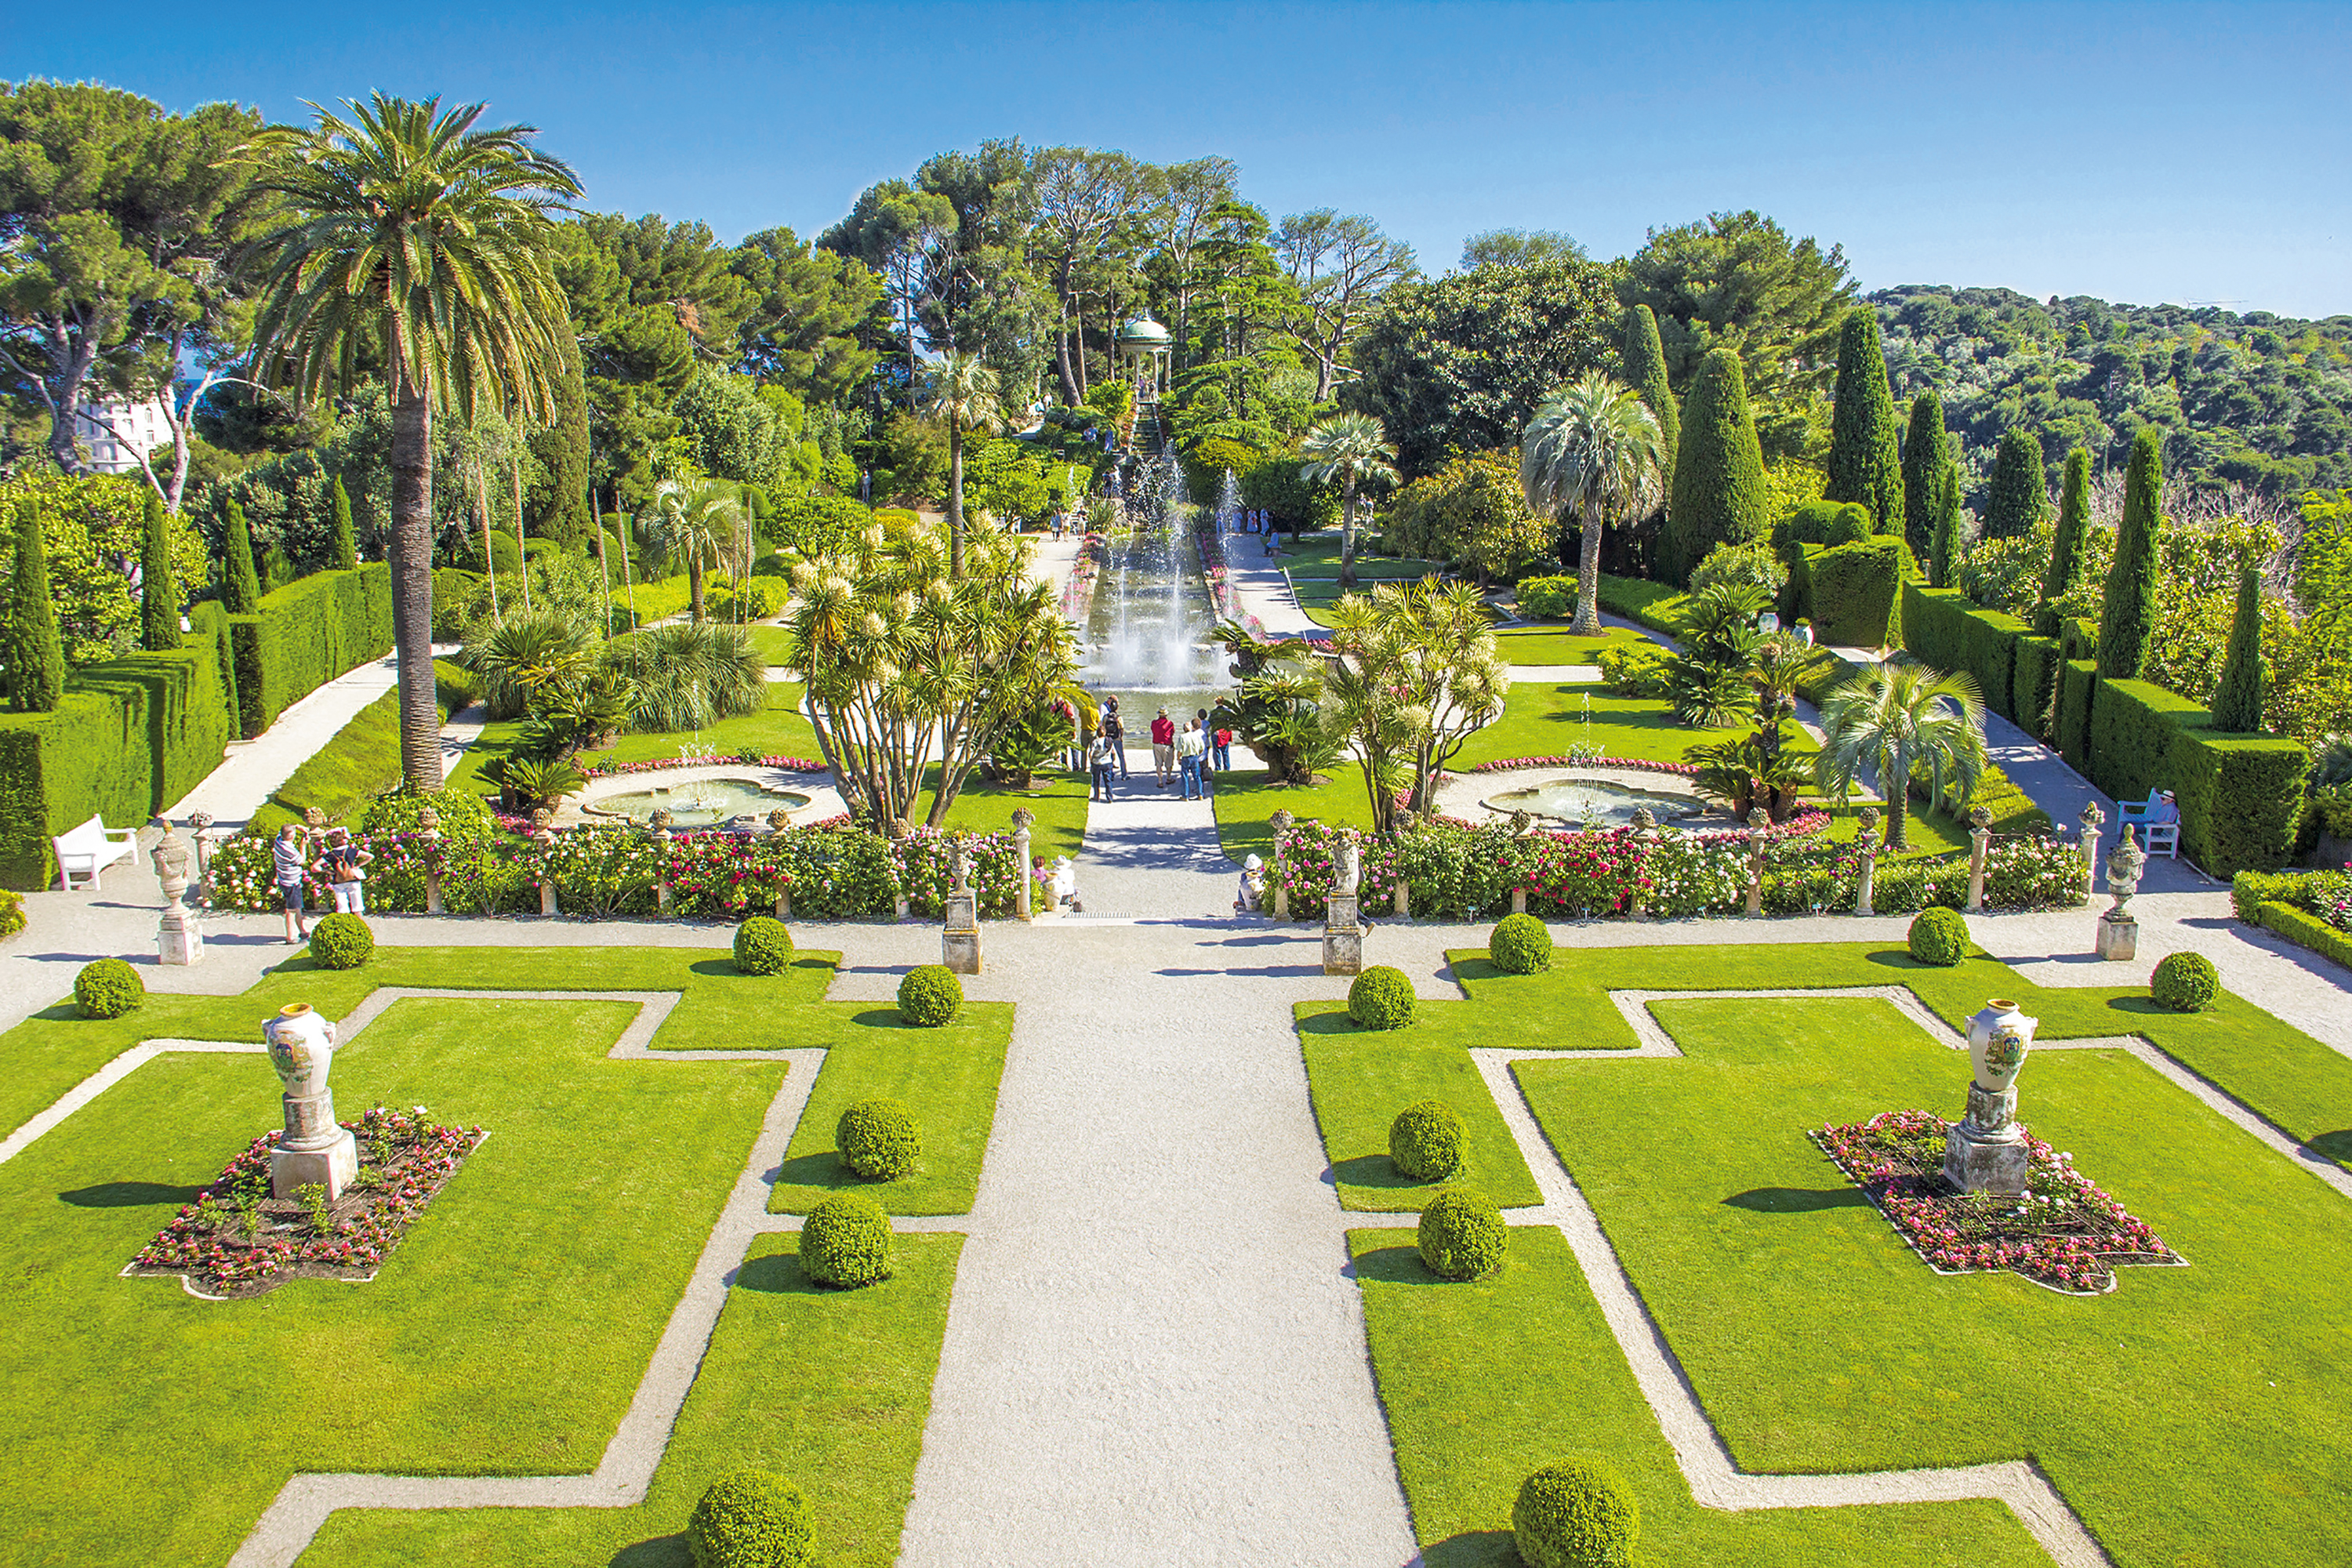 Gardens in the Villa Ephrussi de Rothschild